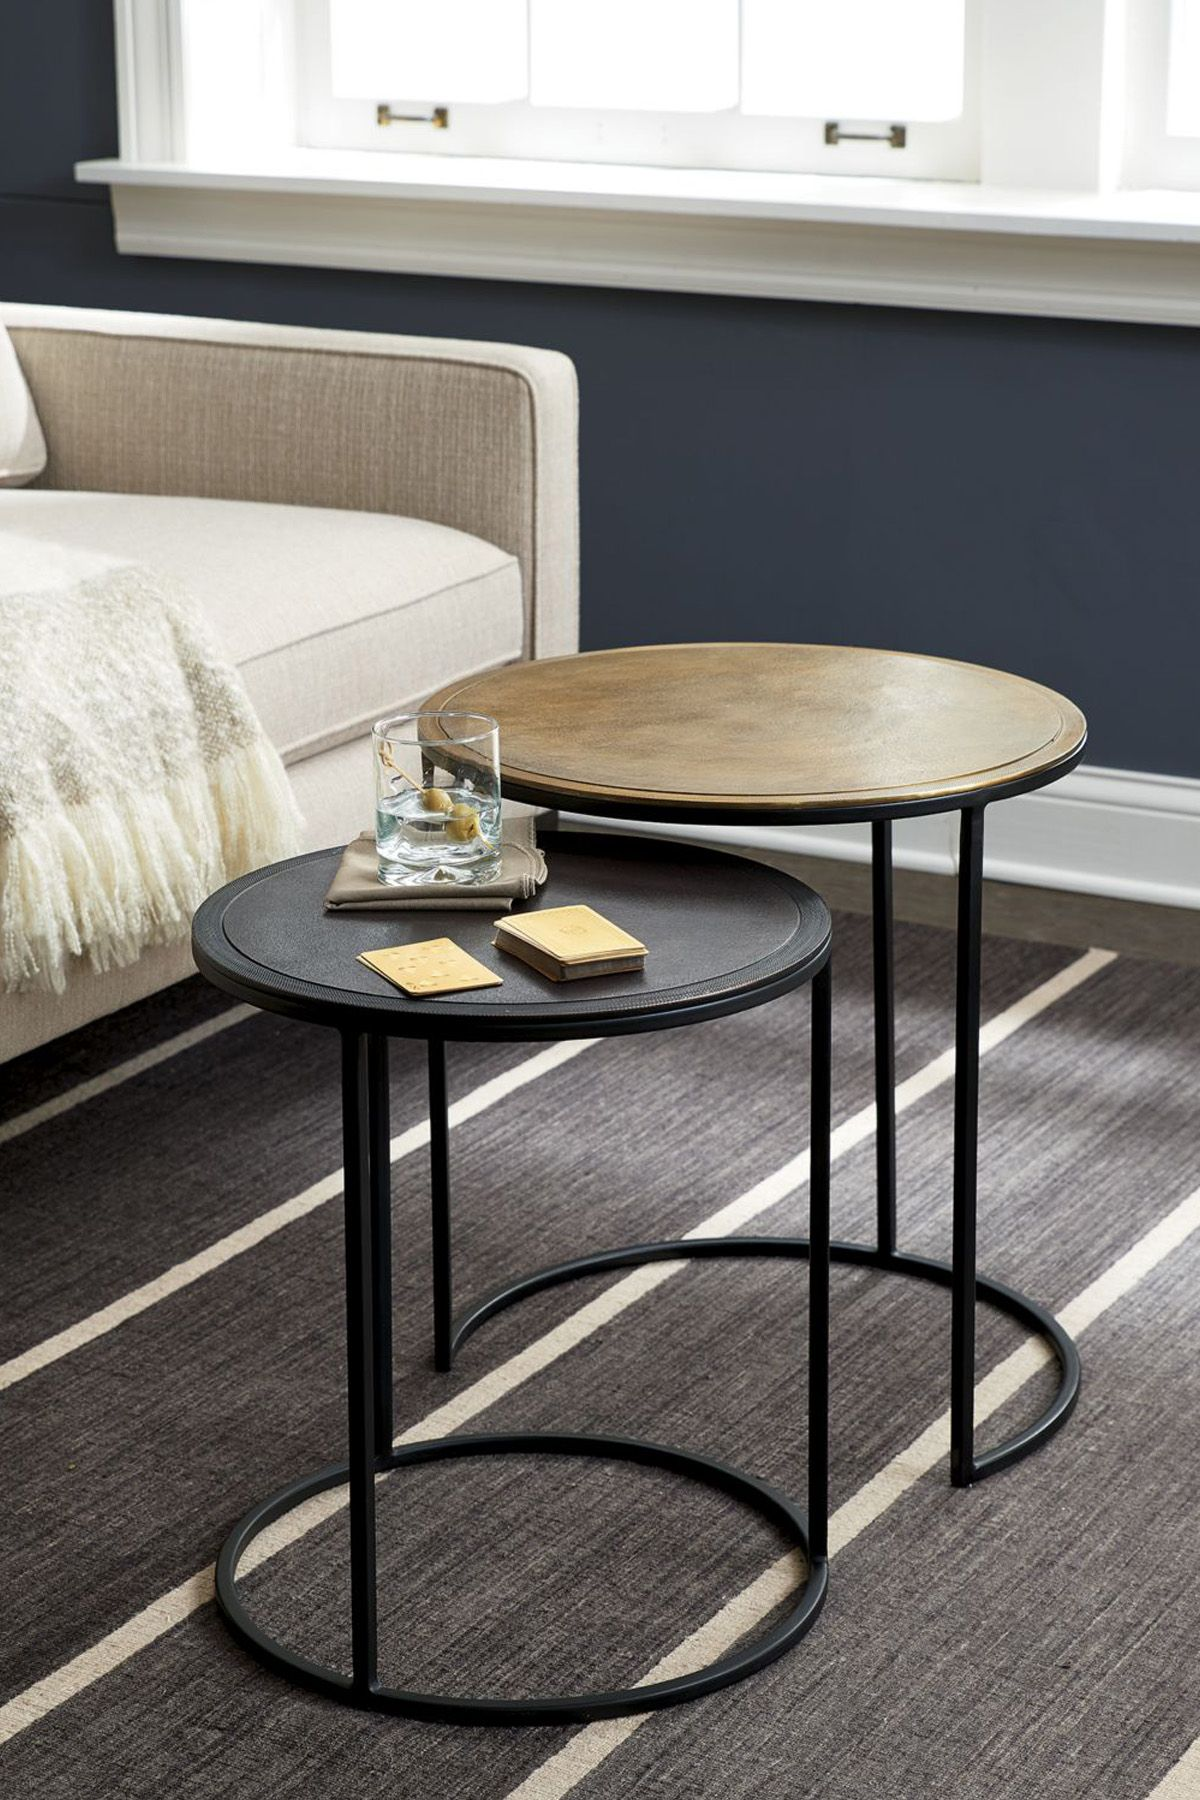 15 Best Furniture Pieces For Small Spaces Space Saving